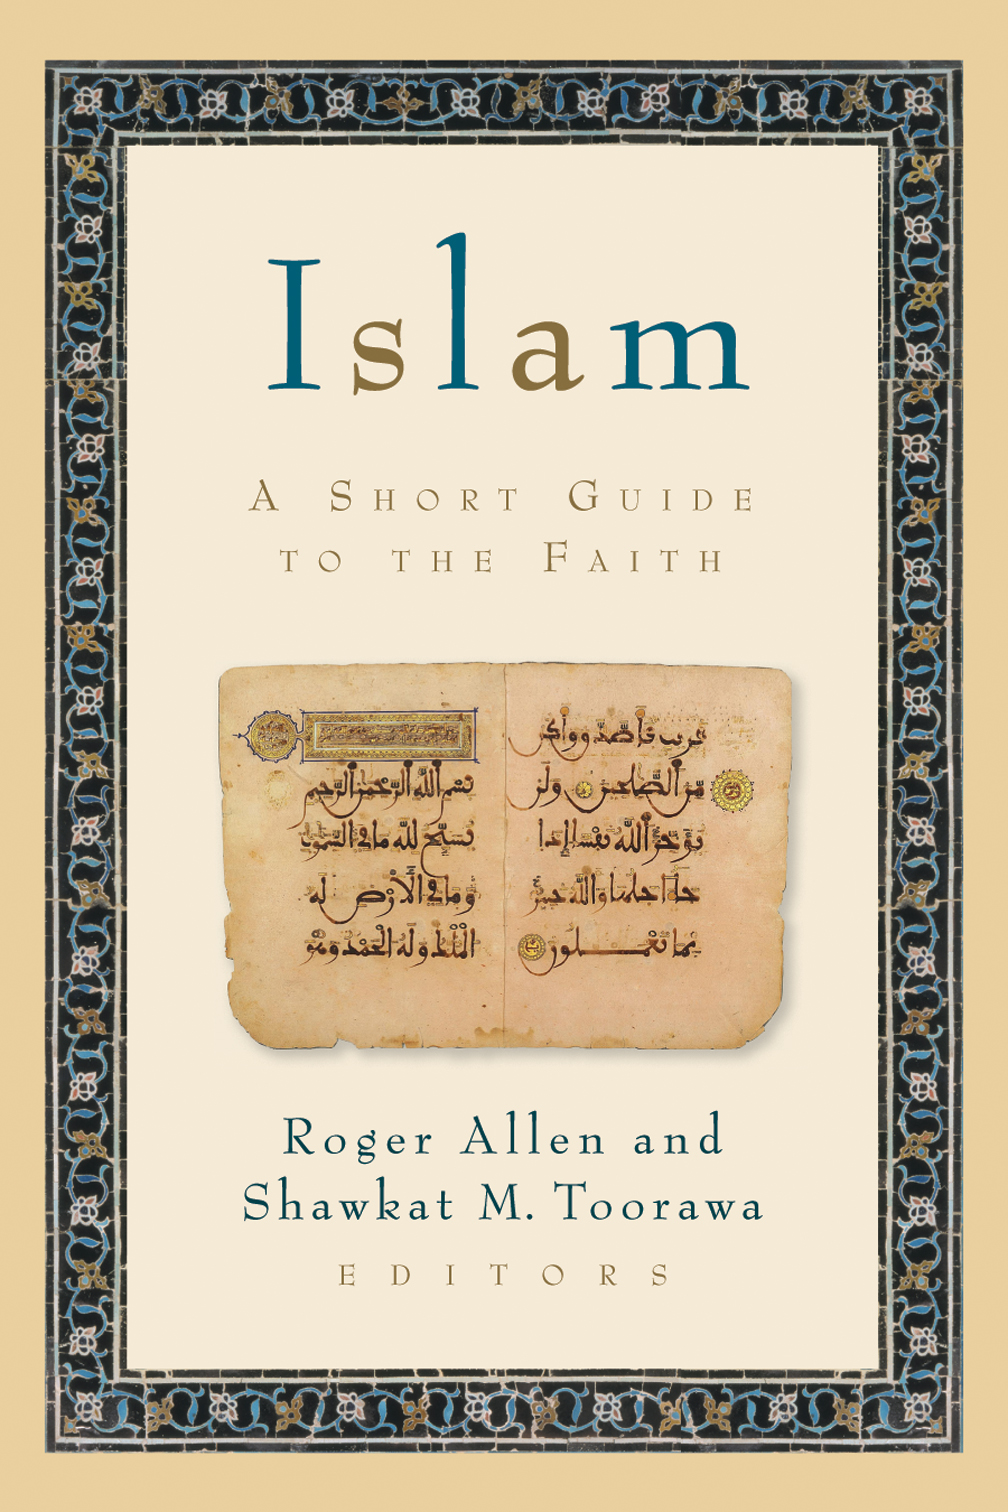 Islam: A Short Guide to the Faith